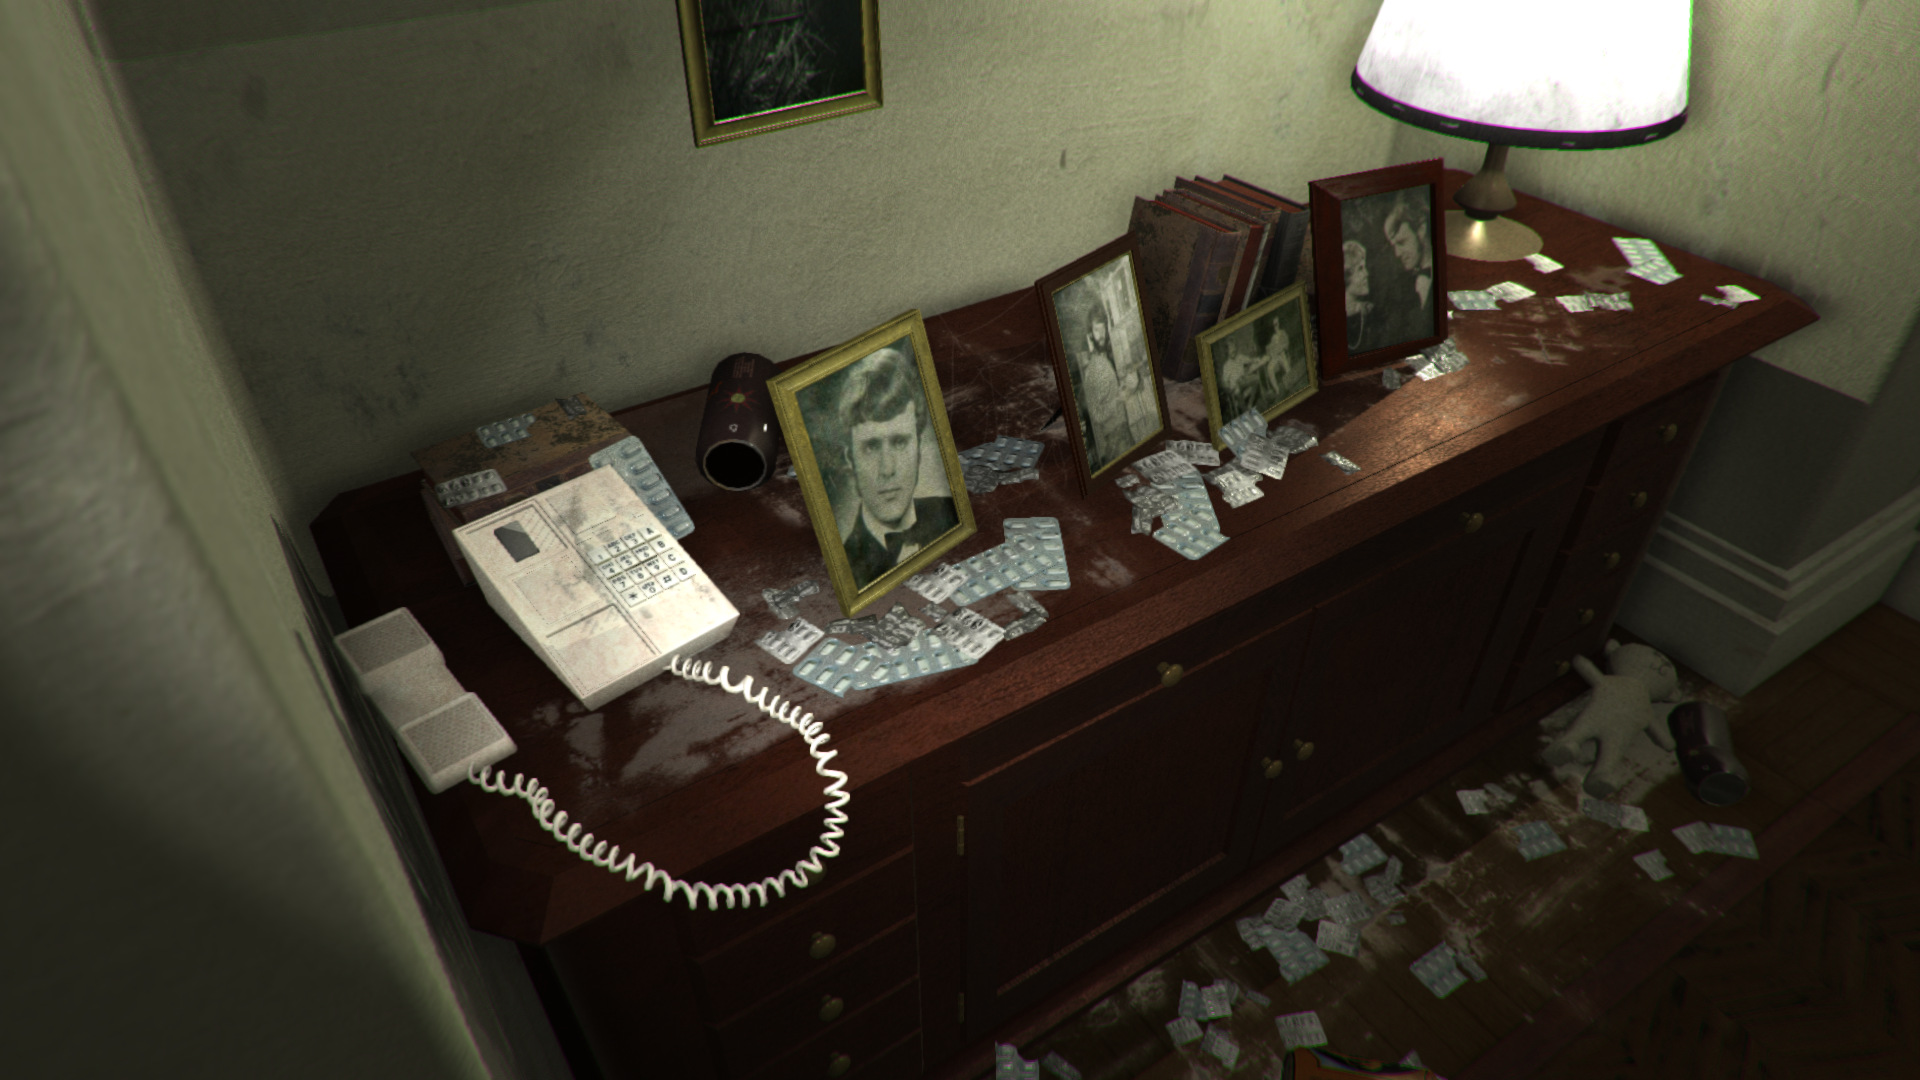 P.T. on PC PuniTy Silent hills remake (3)